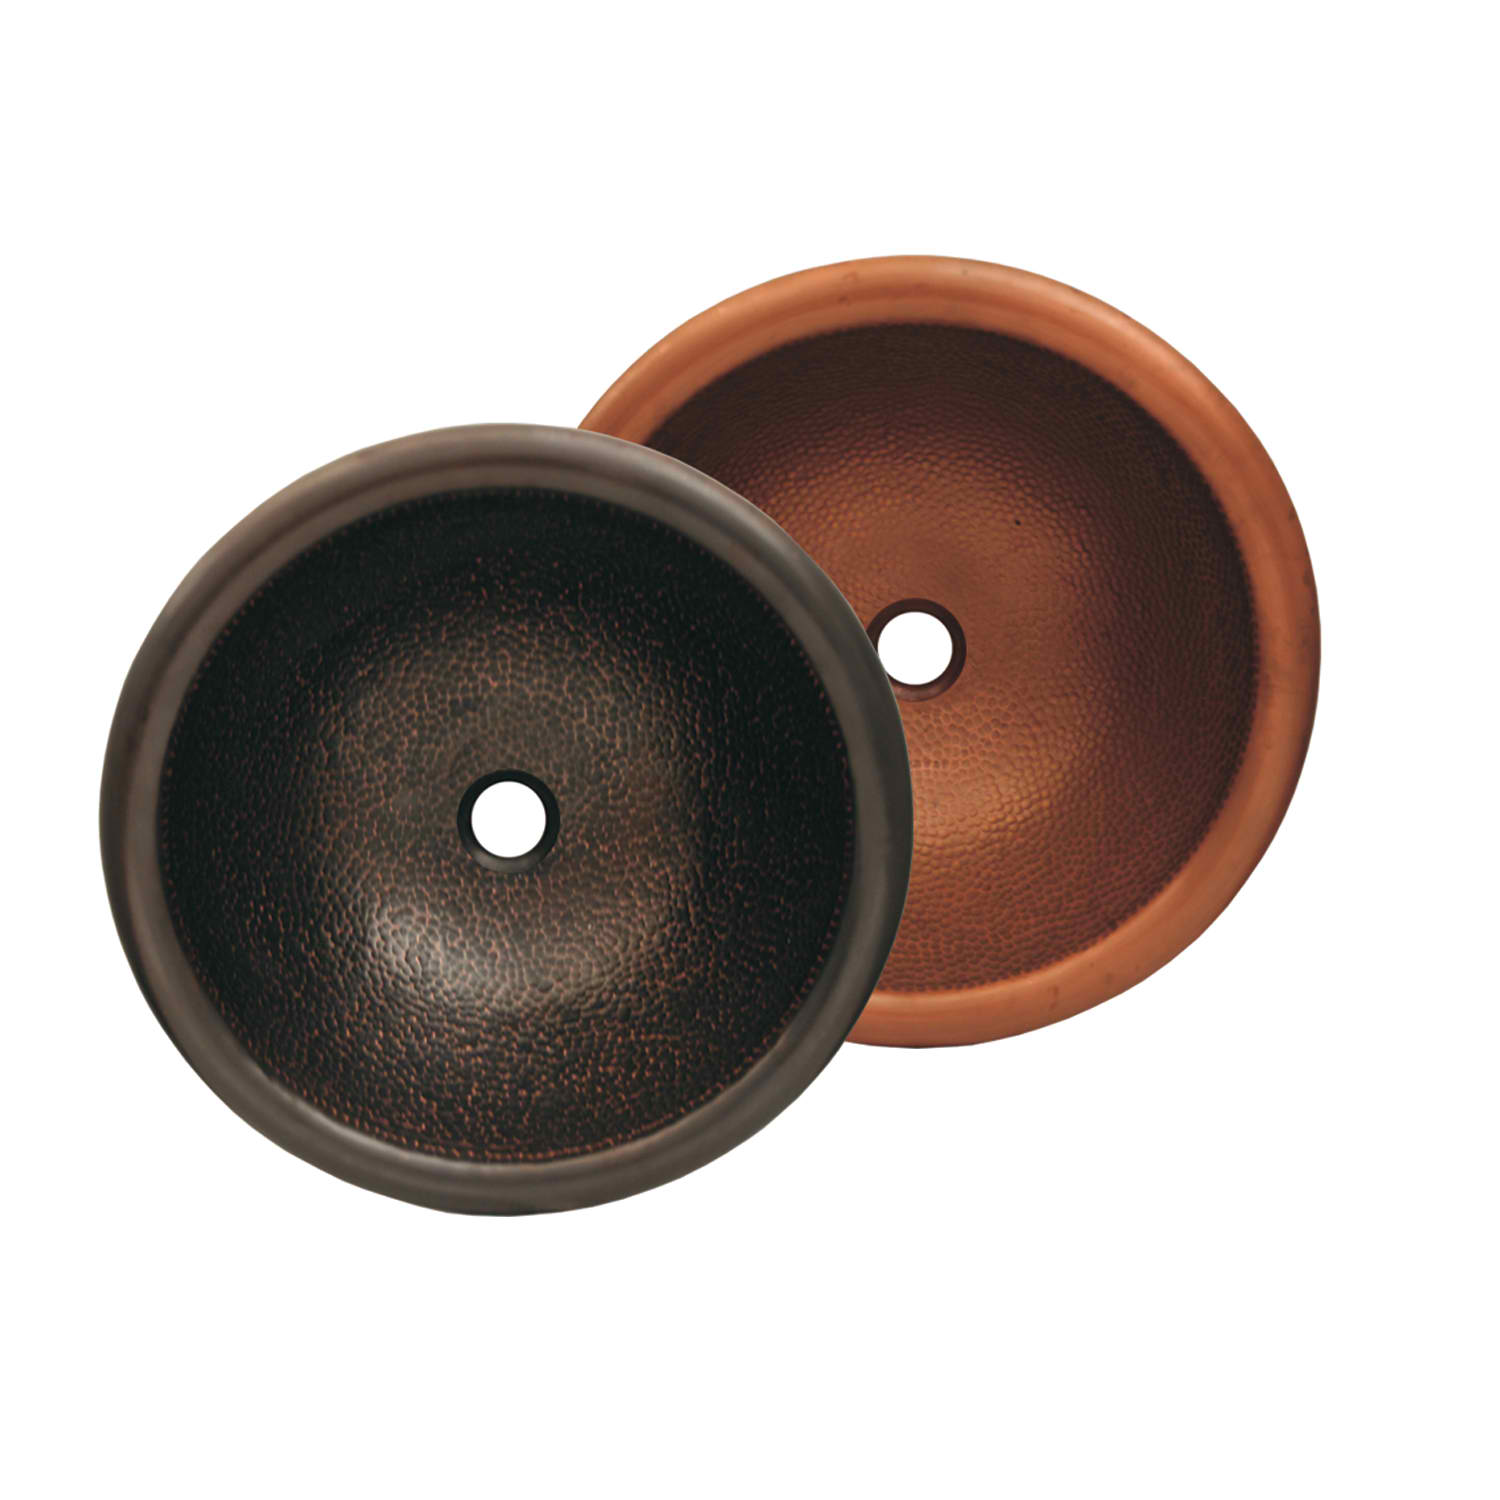 "Copperhaus Round Drop-in/Undermount Copper basin with a Hammered Texture  & 1 1/2"" Center Drain, Hammered Bronze"